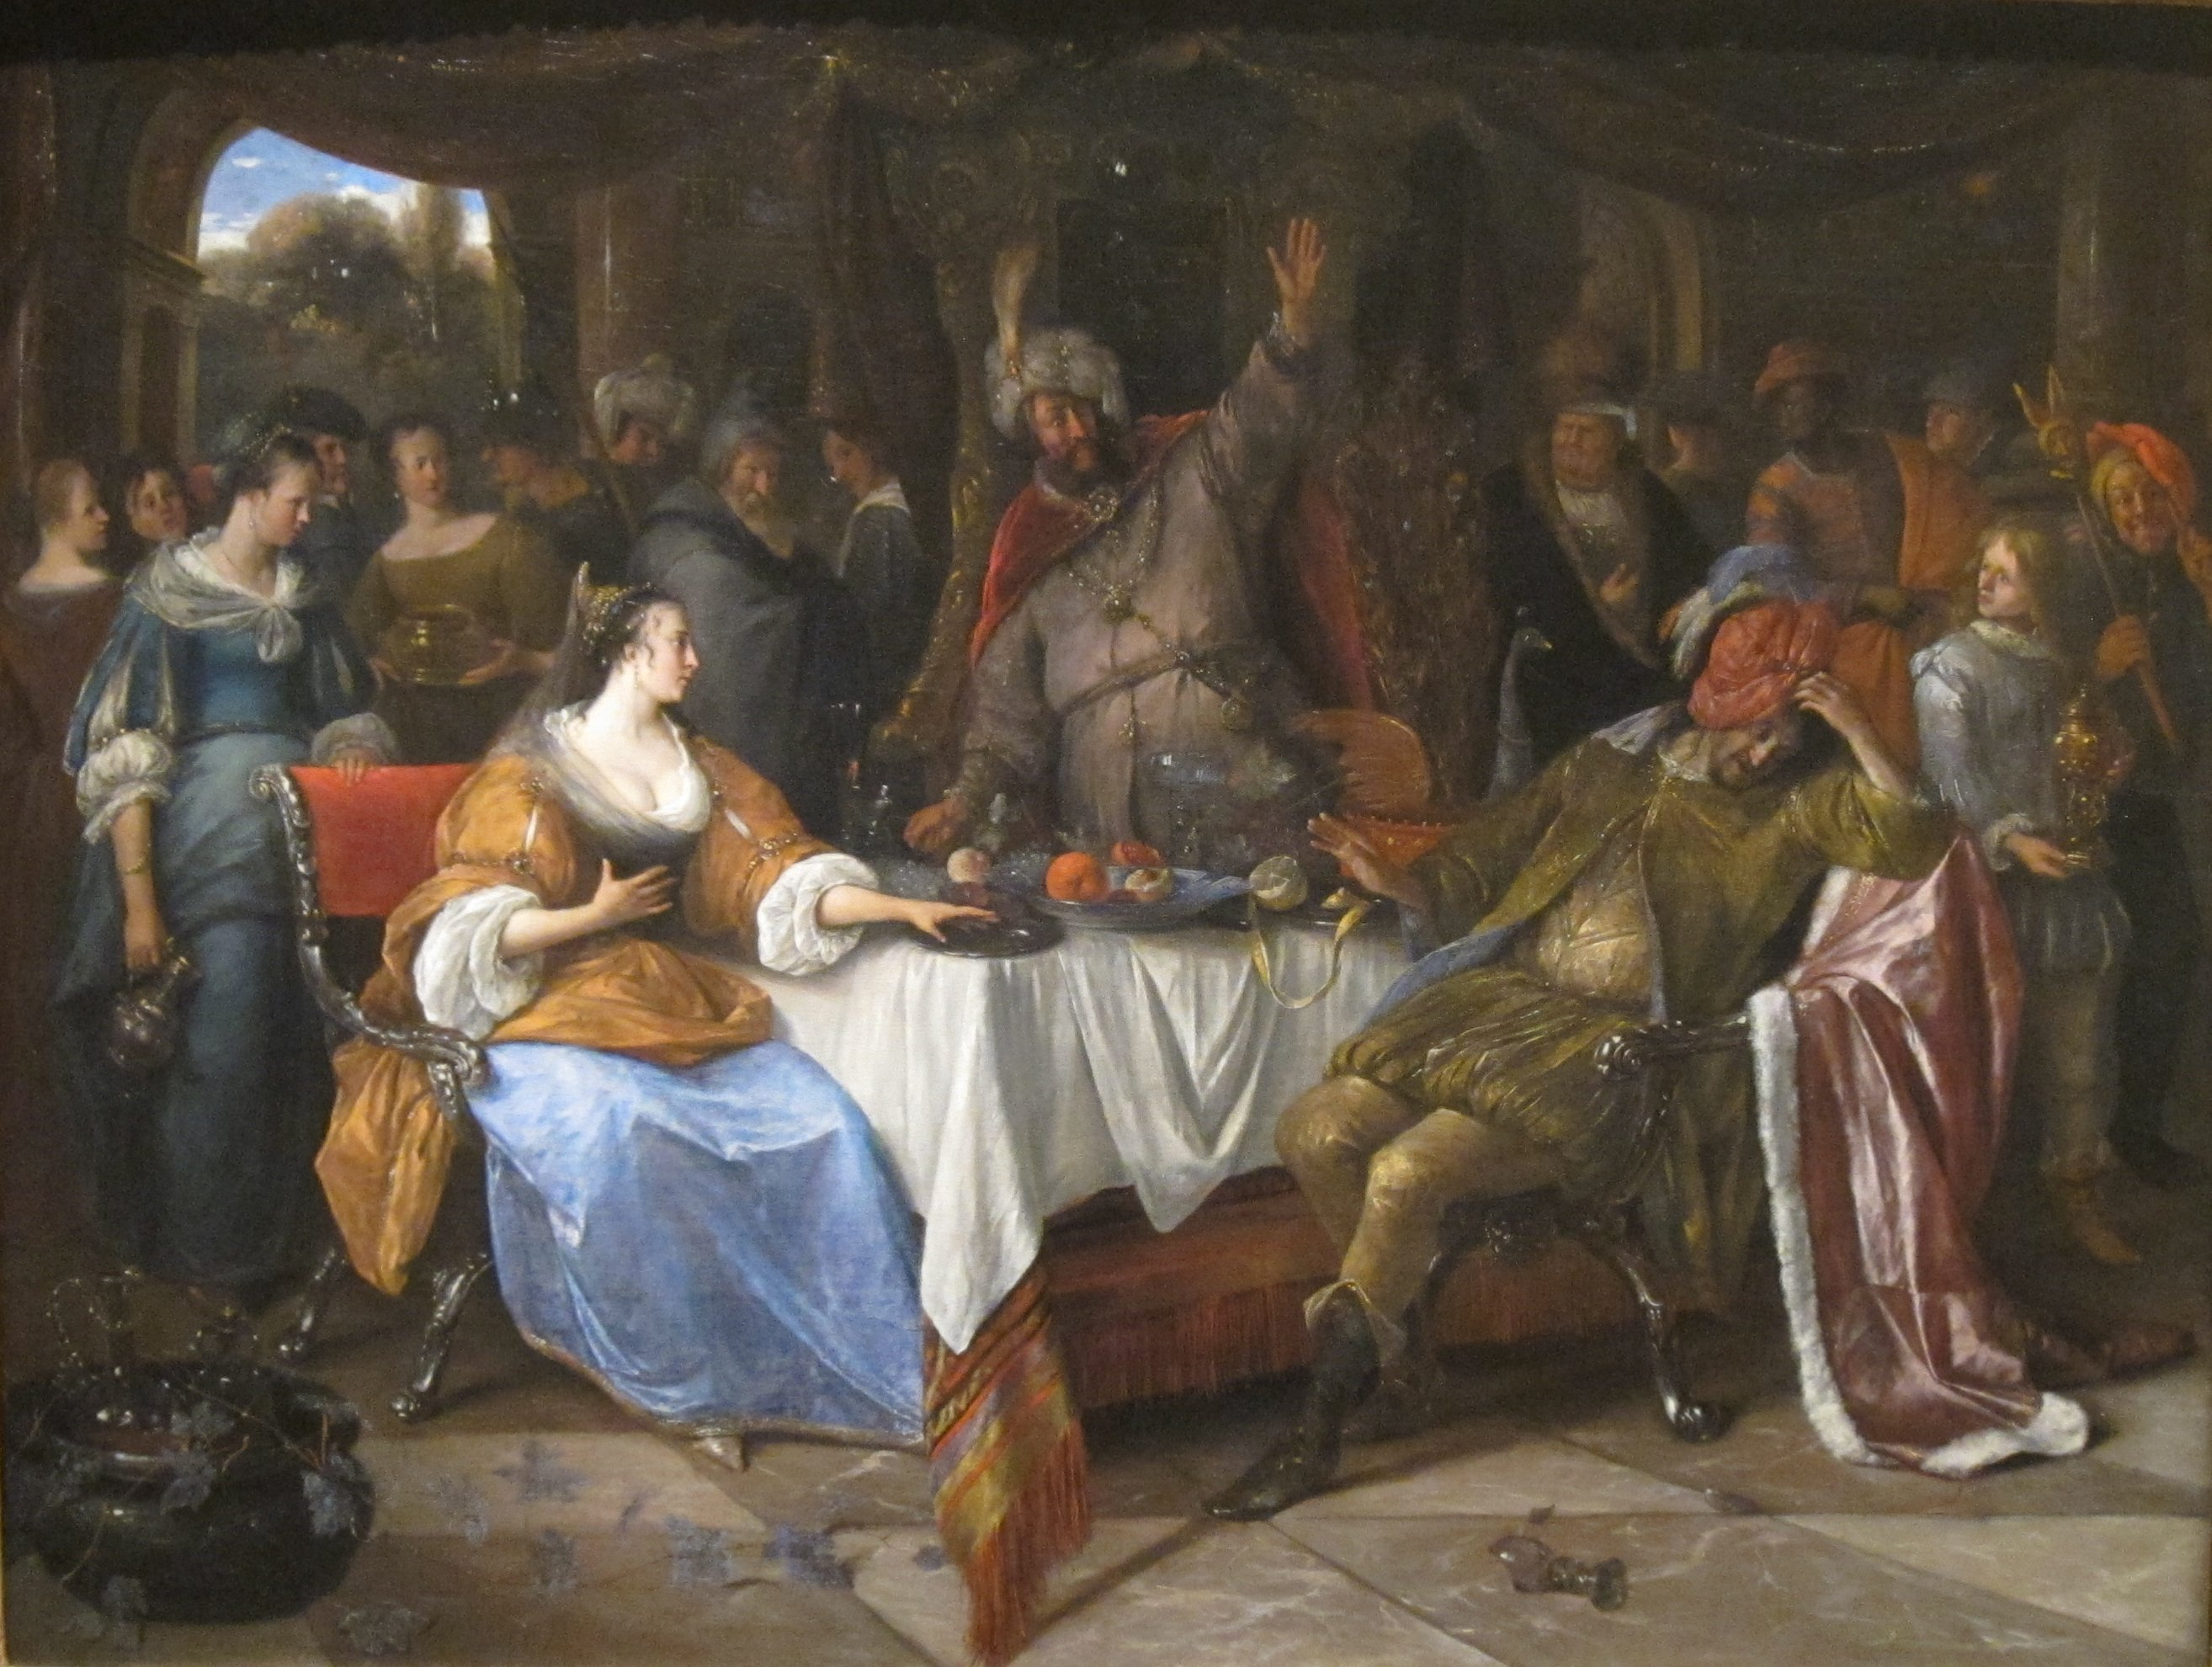 File:'Esther, Ahasuerus, and Haman', oil on canvas painting by Jan Steen,  c. 1668.JPG - Wikimedia Commons